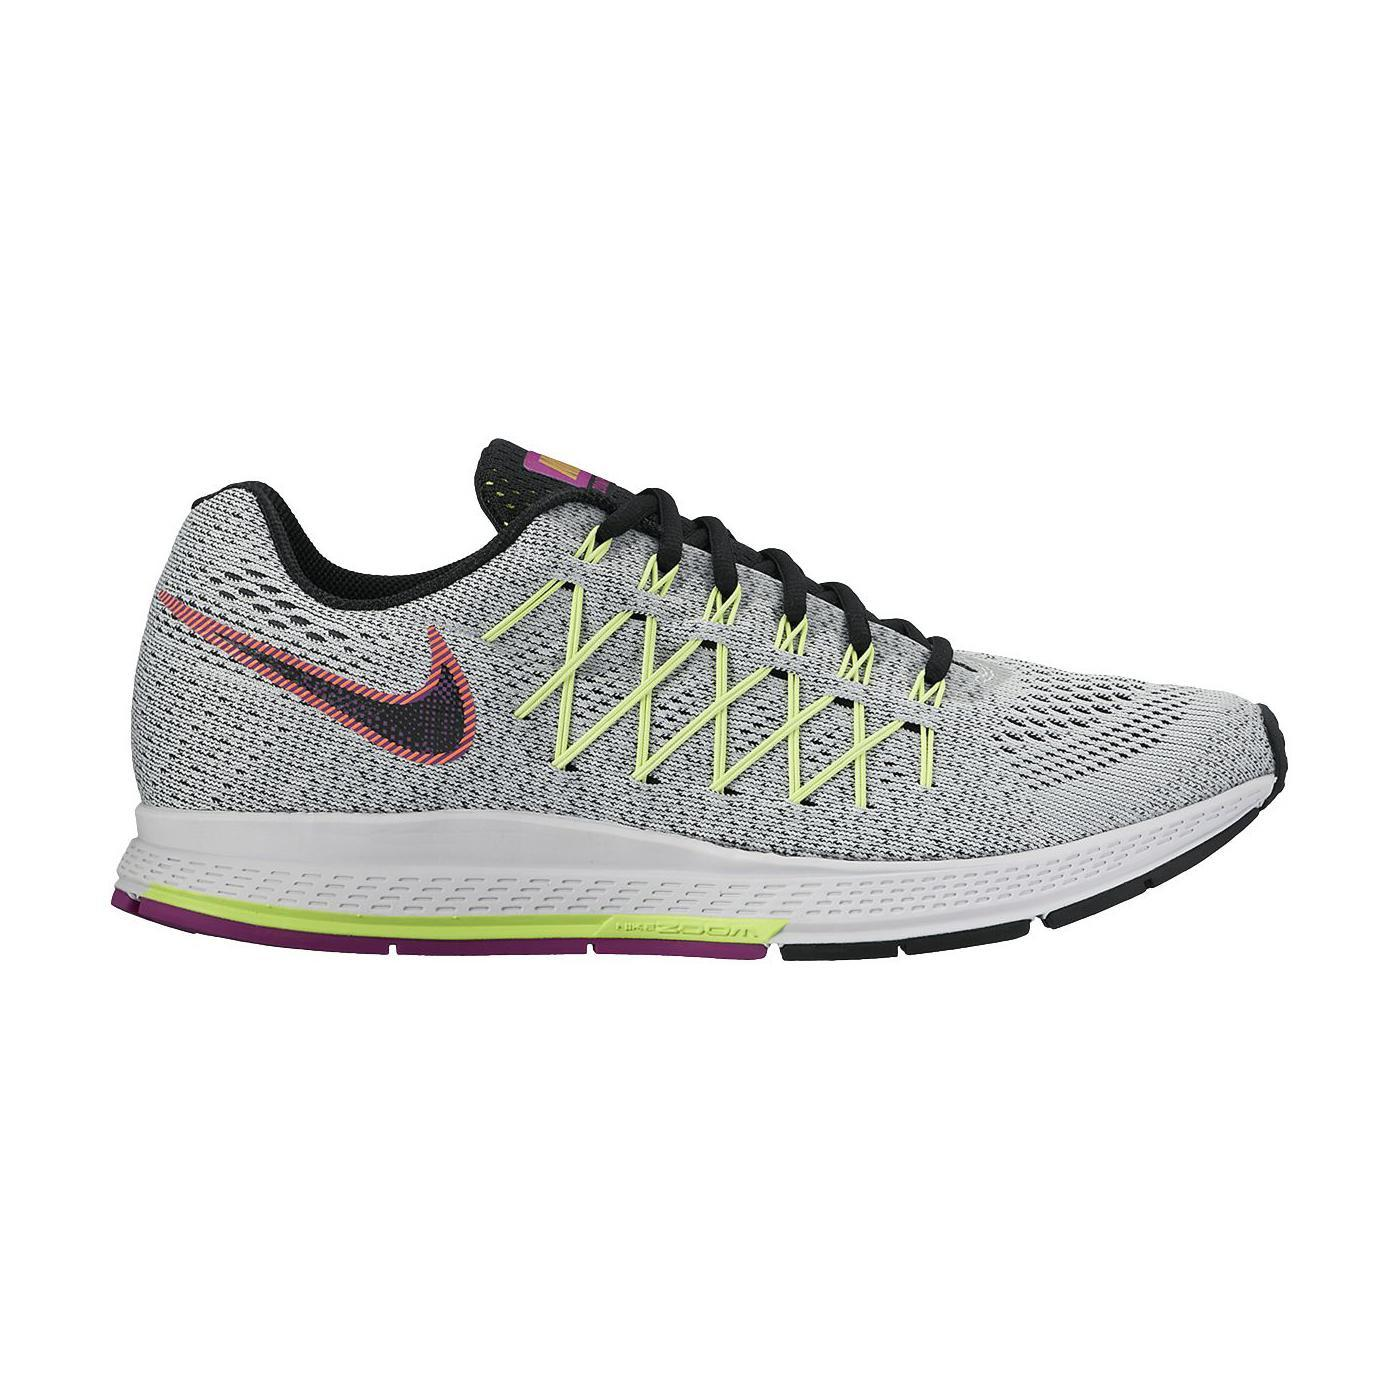 new product 90c9e 64d65 Mens  Nike Competitor Pack Pegasus 32  Fleet Feet